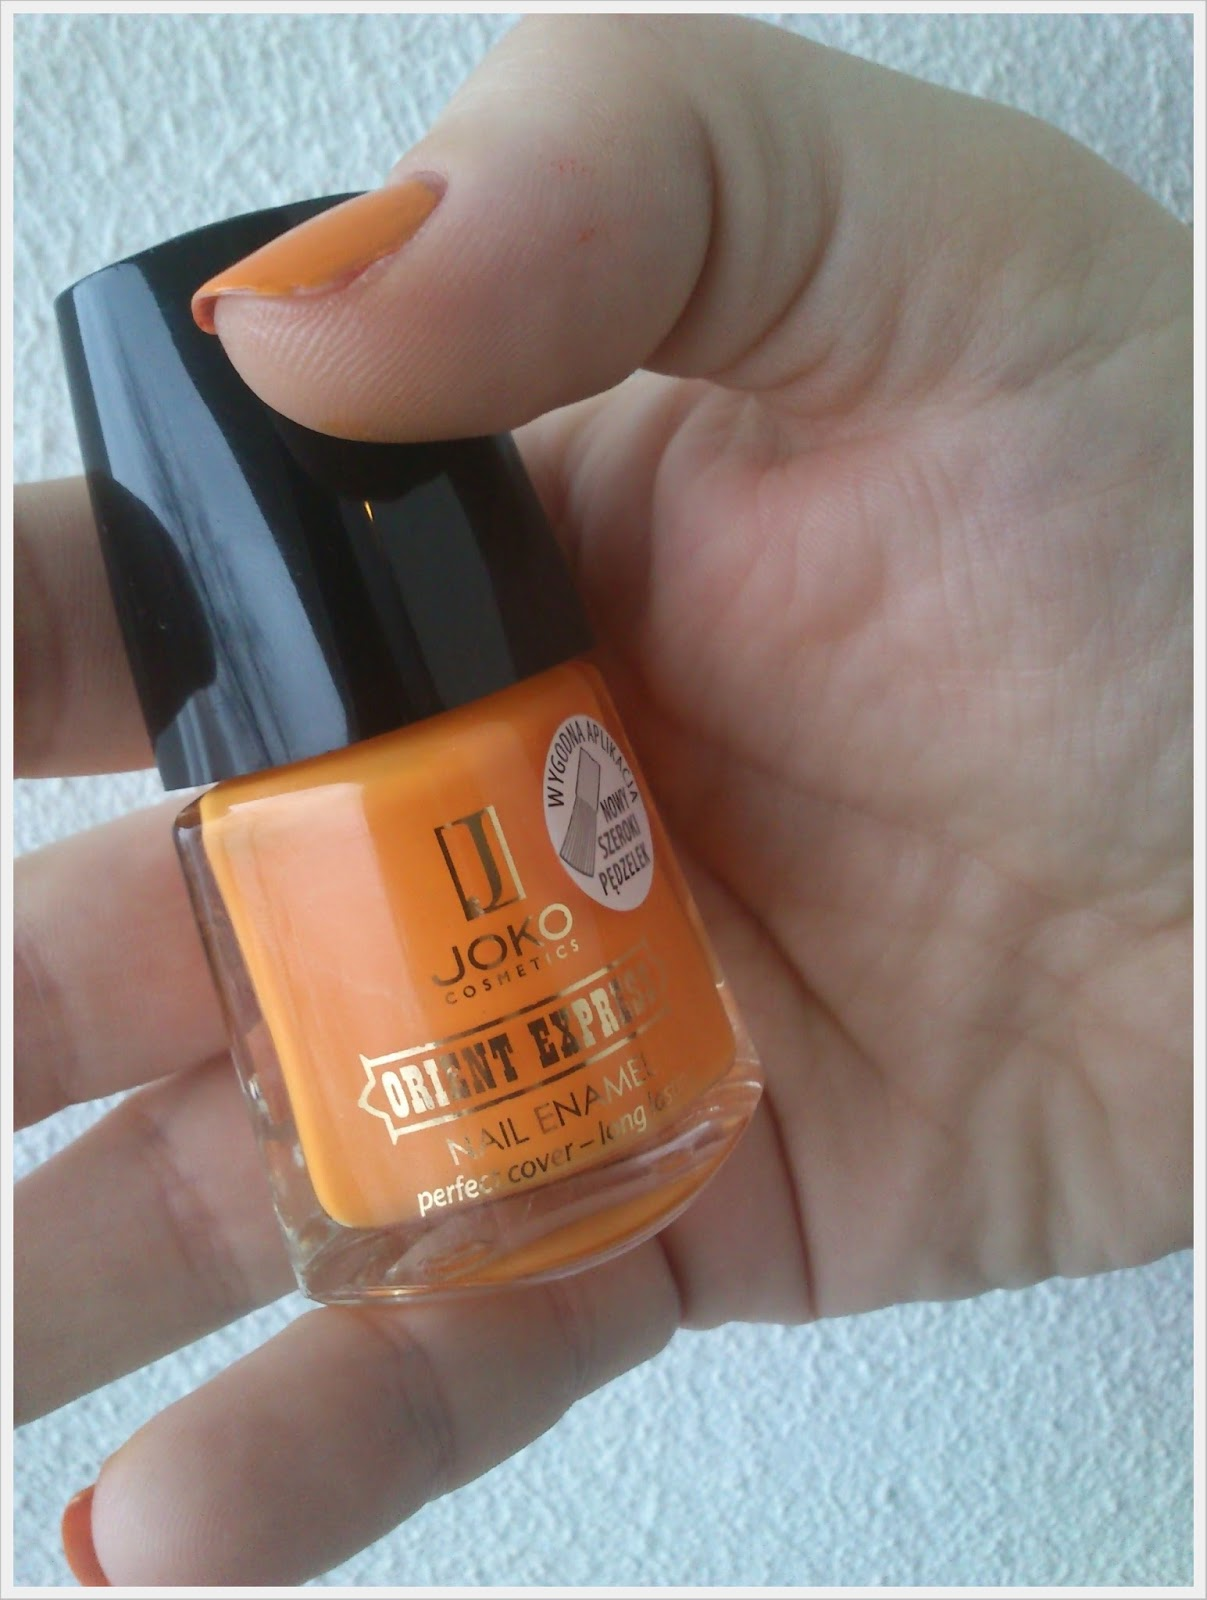 JOKO ORIENT EXPRESS J171 ORANGE DELIGHT